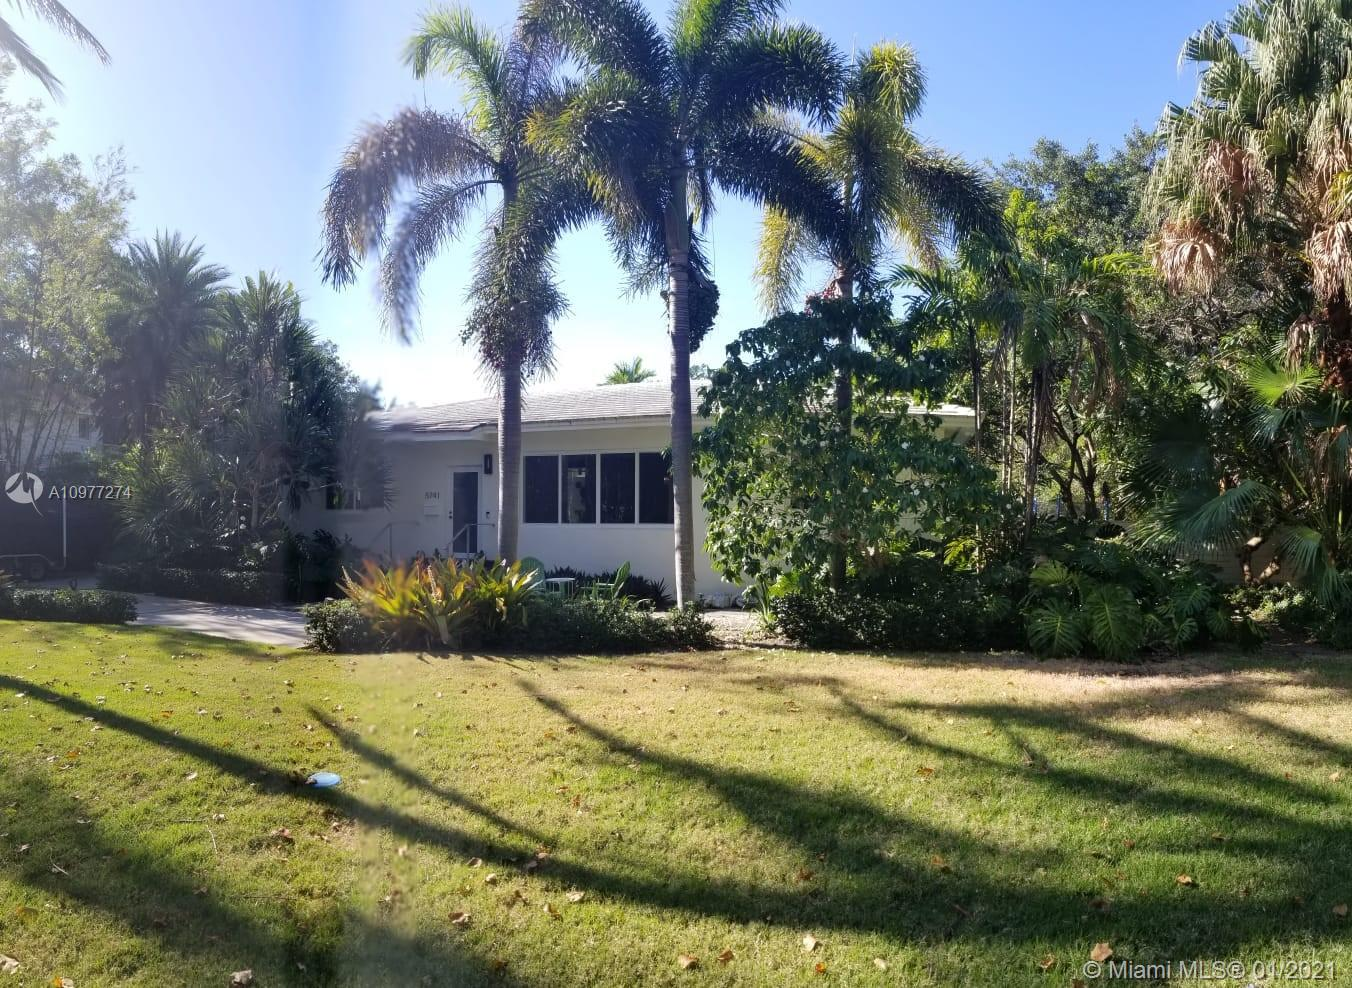 High Ceilings, Rebuilt in 2013 Unique Double lot goes from 84 STREET to 83 Street in South Miami, adjacent to Gables. House rebuilt opening 6 walls with new Hurricane Windows and Doors, Large walking Cedar closets & Open Kitchen & house to outdoor patio with New Basketball court. Outdoors brought in you can watch your children from every room. Designer Stark, Hosech & Decolav, finishes. European kitchen design with state of art Gaggenau, Subzero & Bulthaup appliances & cabinets. Restoration hardware chandeliers. New Quartzite, Quartz & Marble counter tops and floors in kitchen and baths. Gas range and water heater. Salt pool+spa+Tech Smart House. Exotic trees plus Mango tree. Live it, or BUILD 2 HOMES to suit. Home is much larger than tax role as per owner.